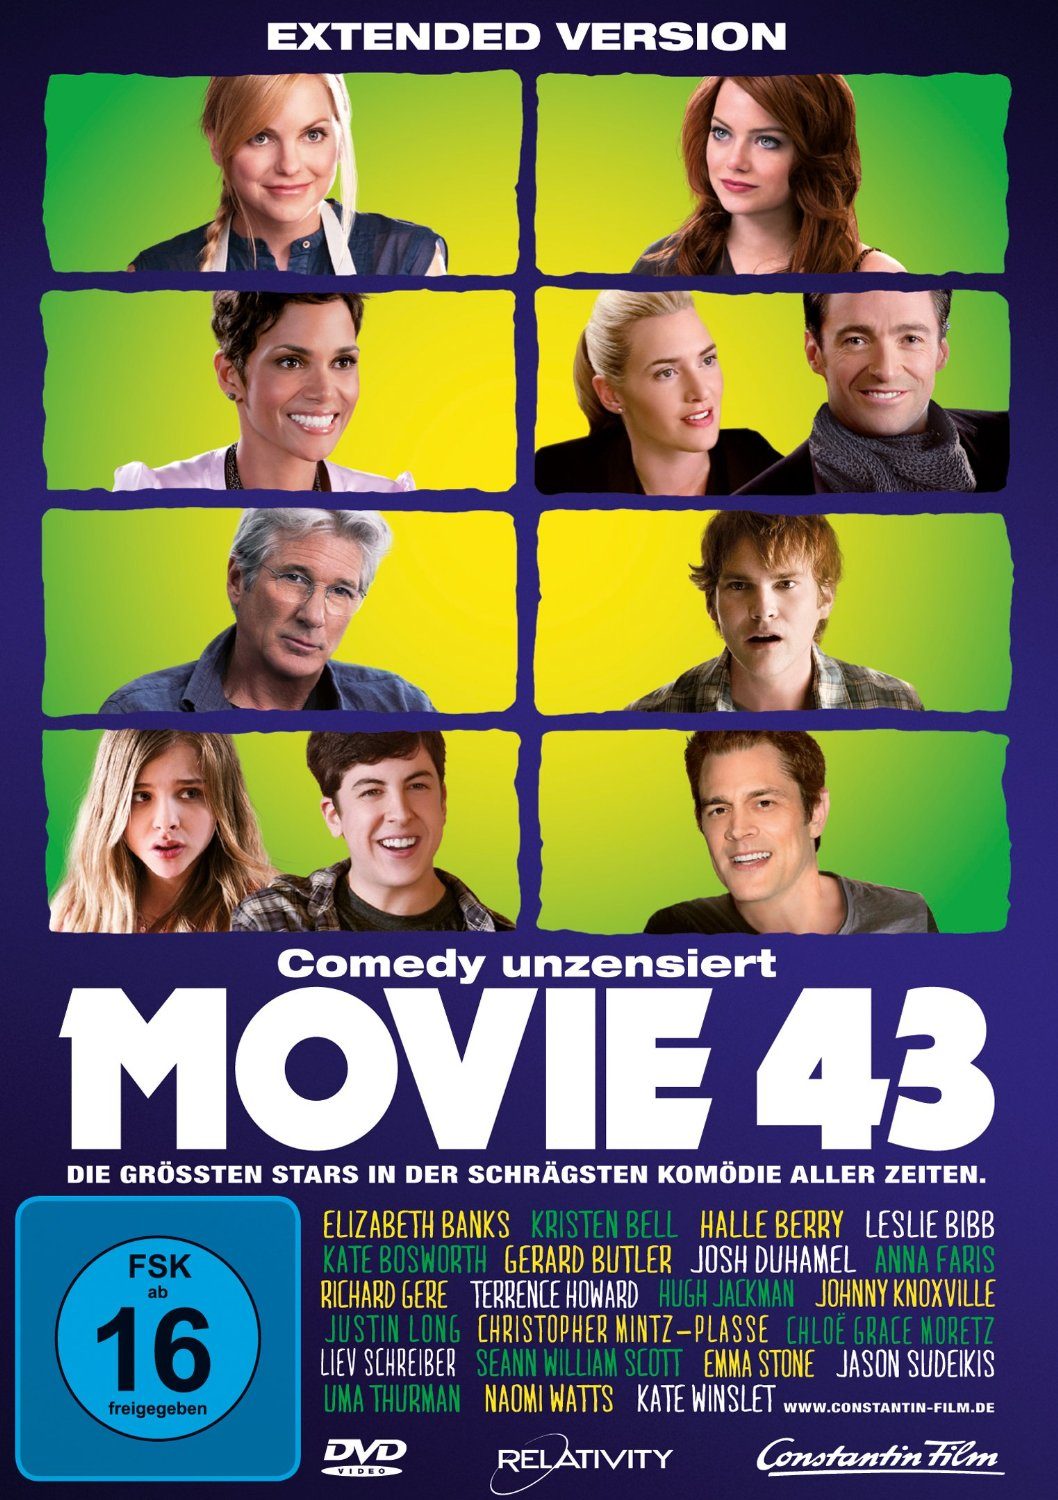 Movie 43 batman and robin speed dating